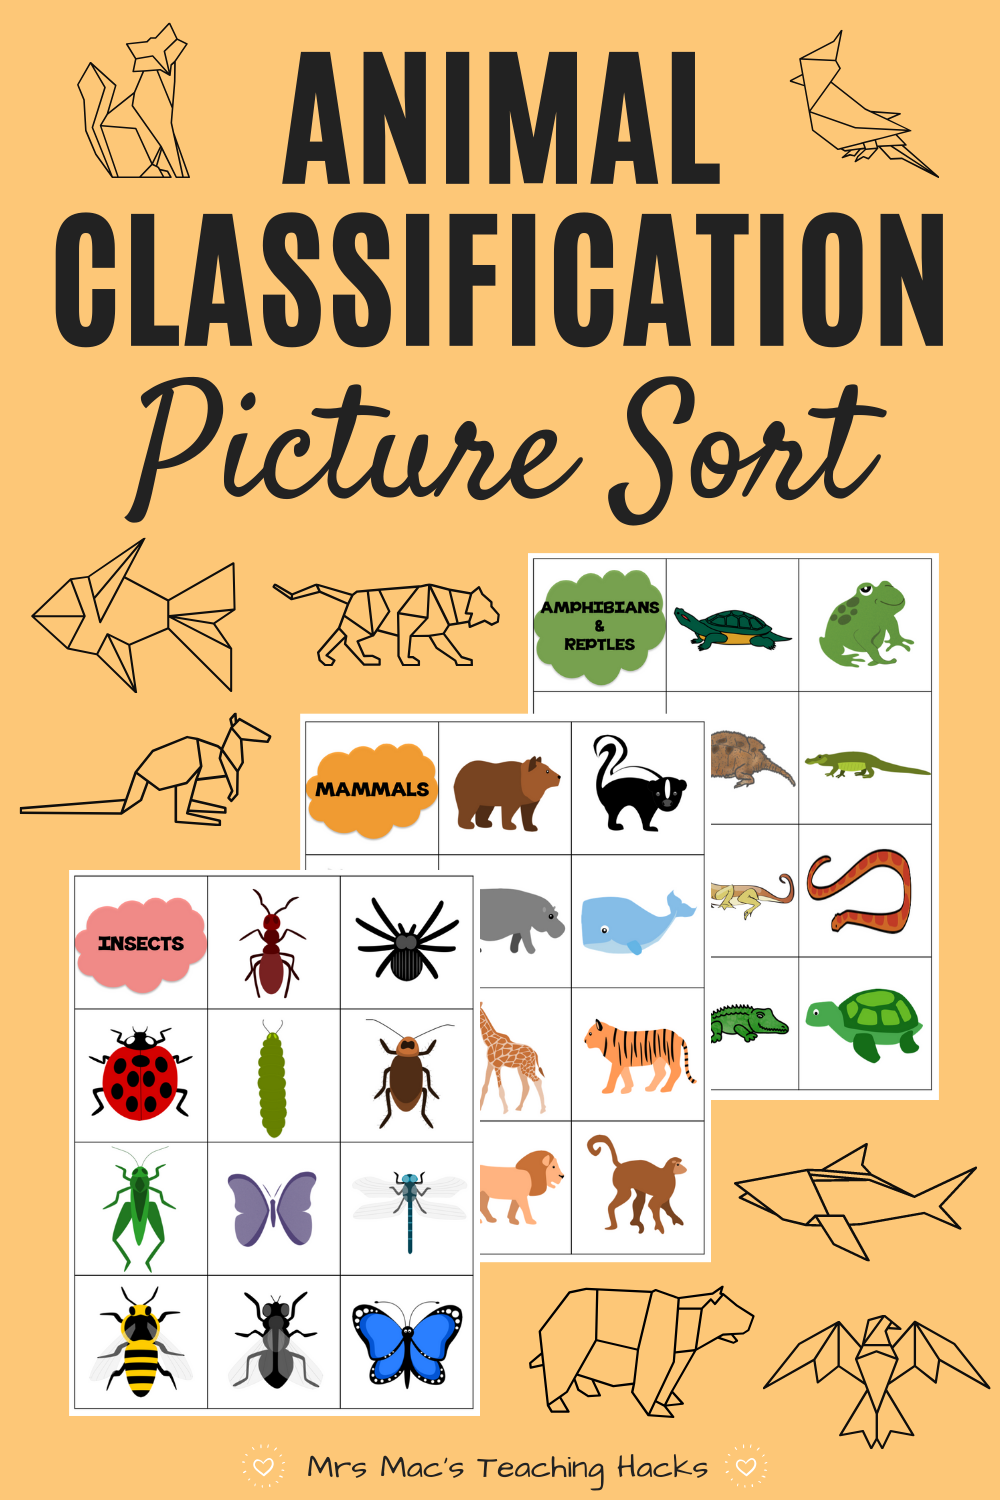 Animal Classification Picture Sort | Animal classification, Picture sorts, Animal  categories